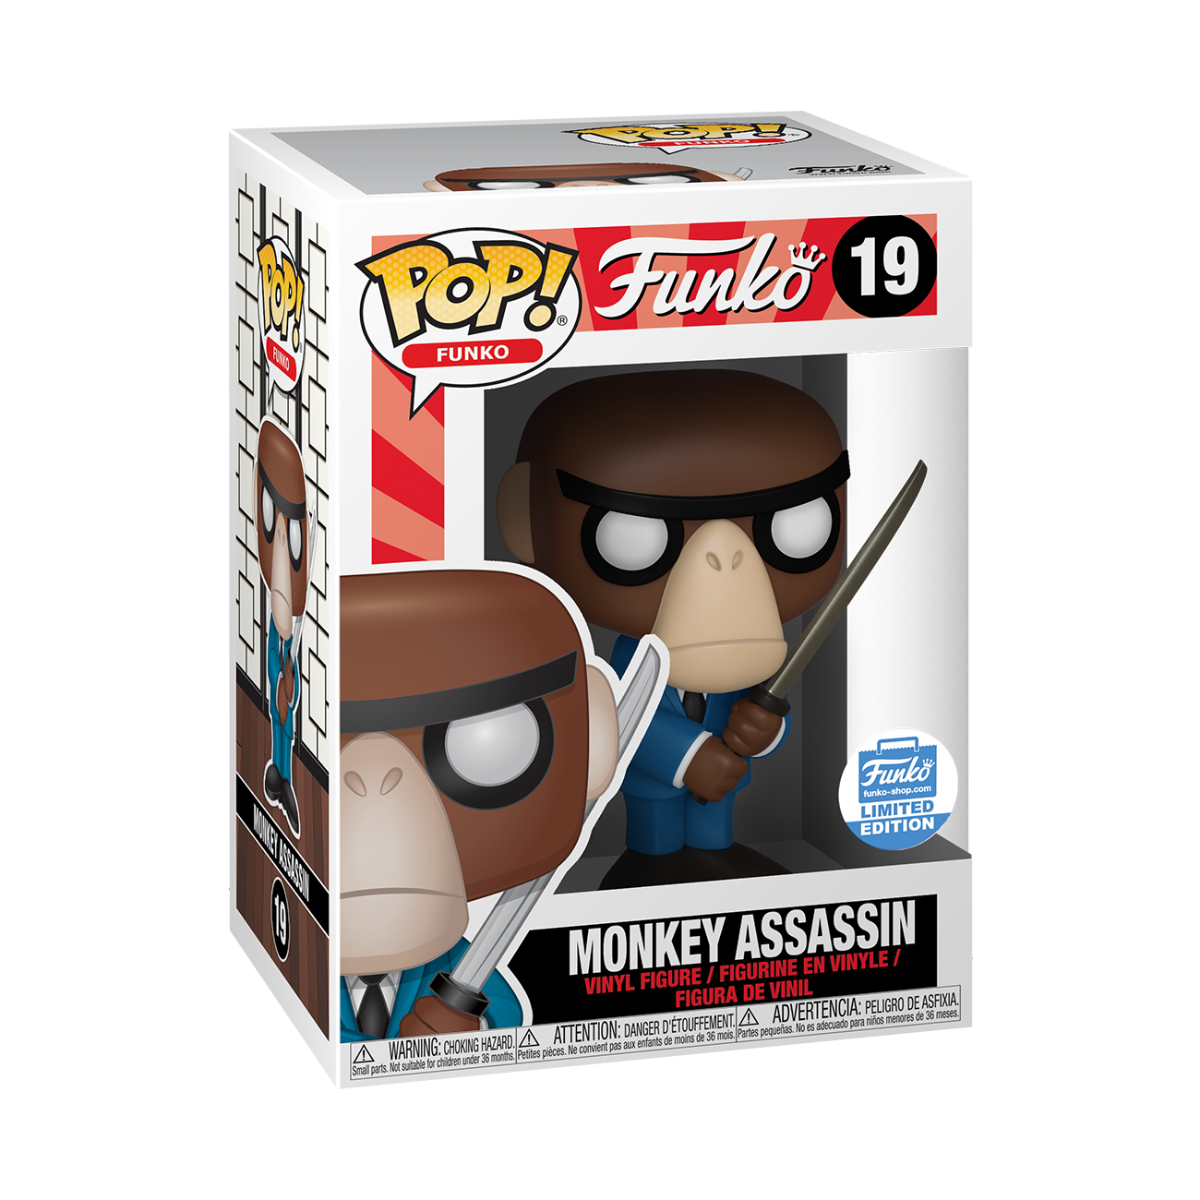 Monkey Assassin Funko Pop